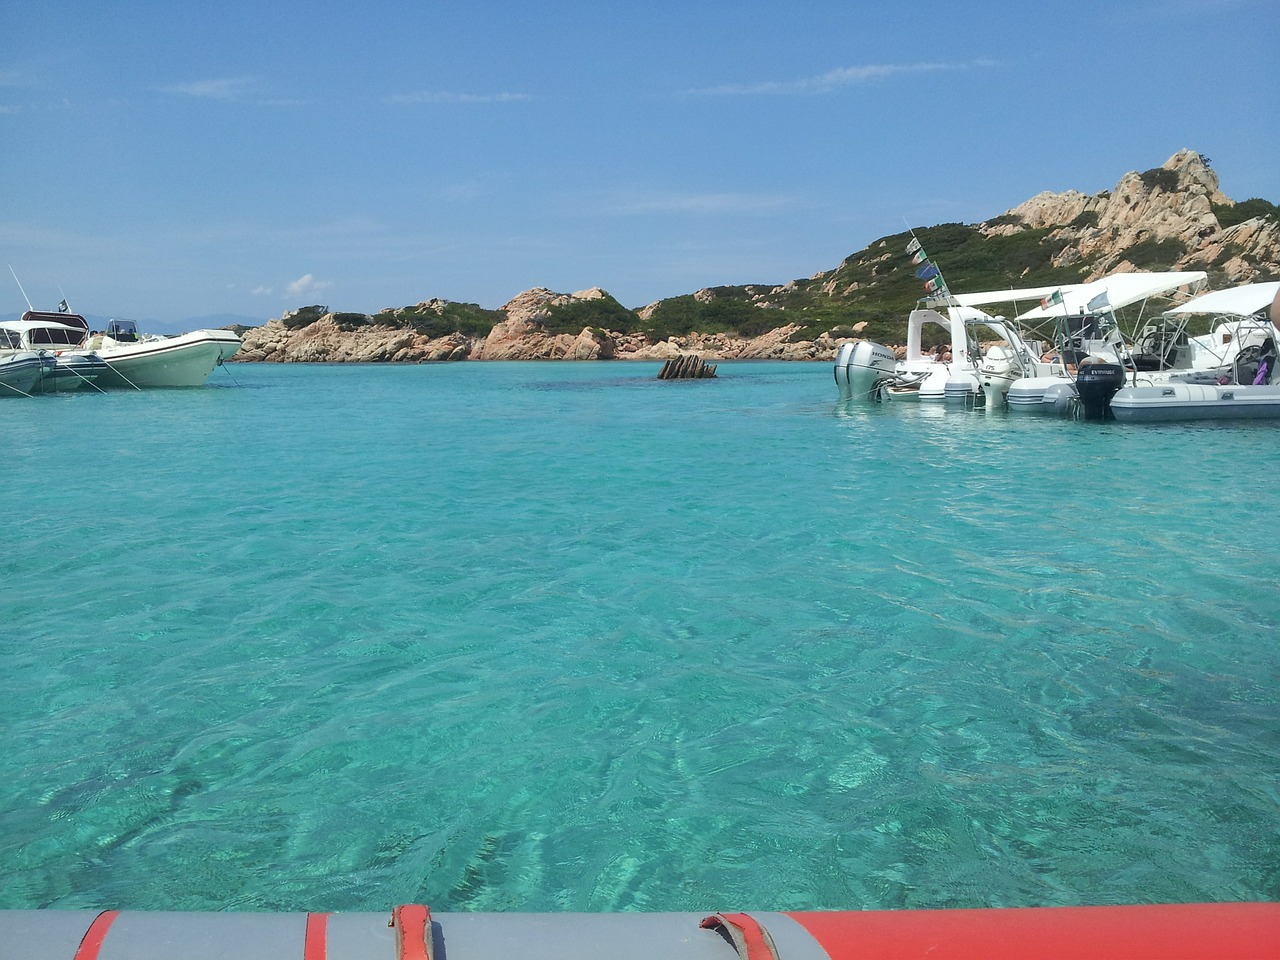 The sea at La Maddalena